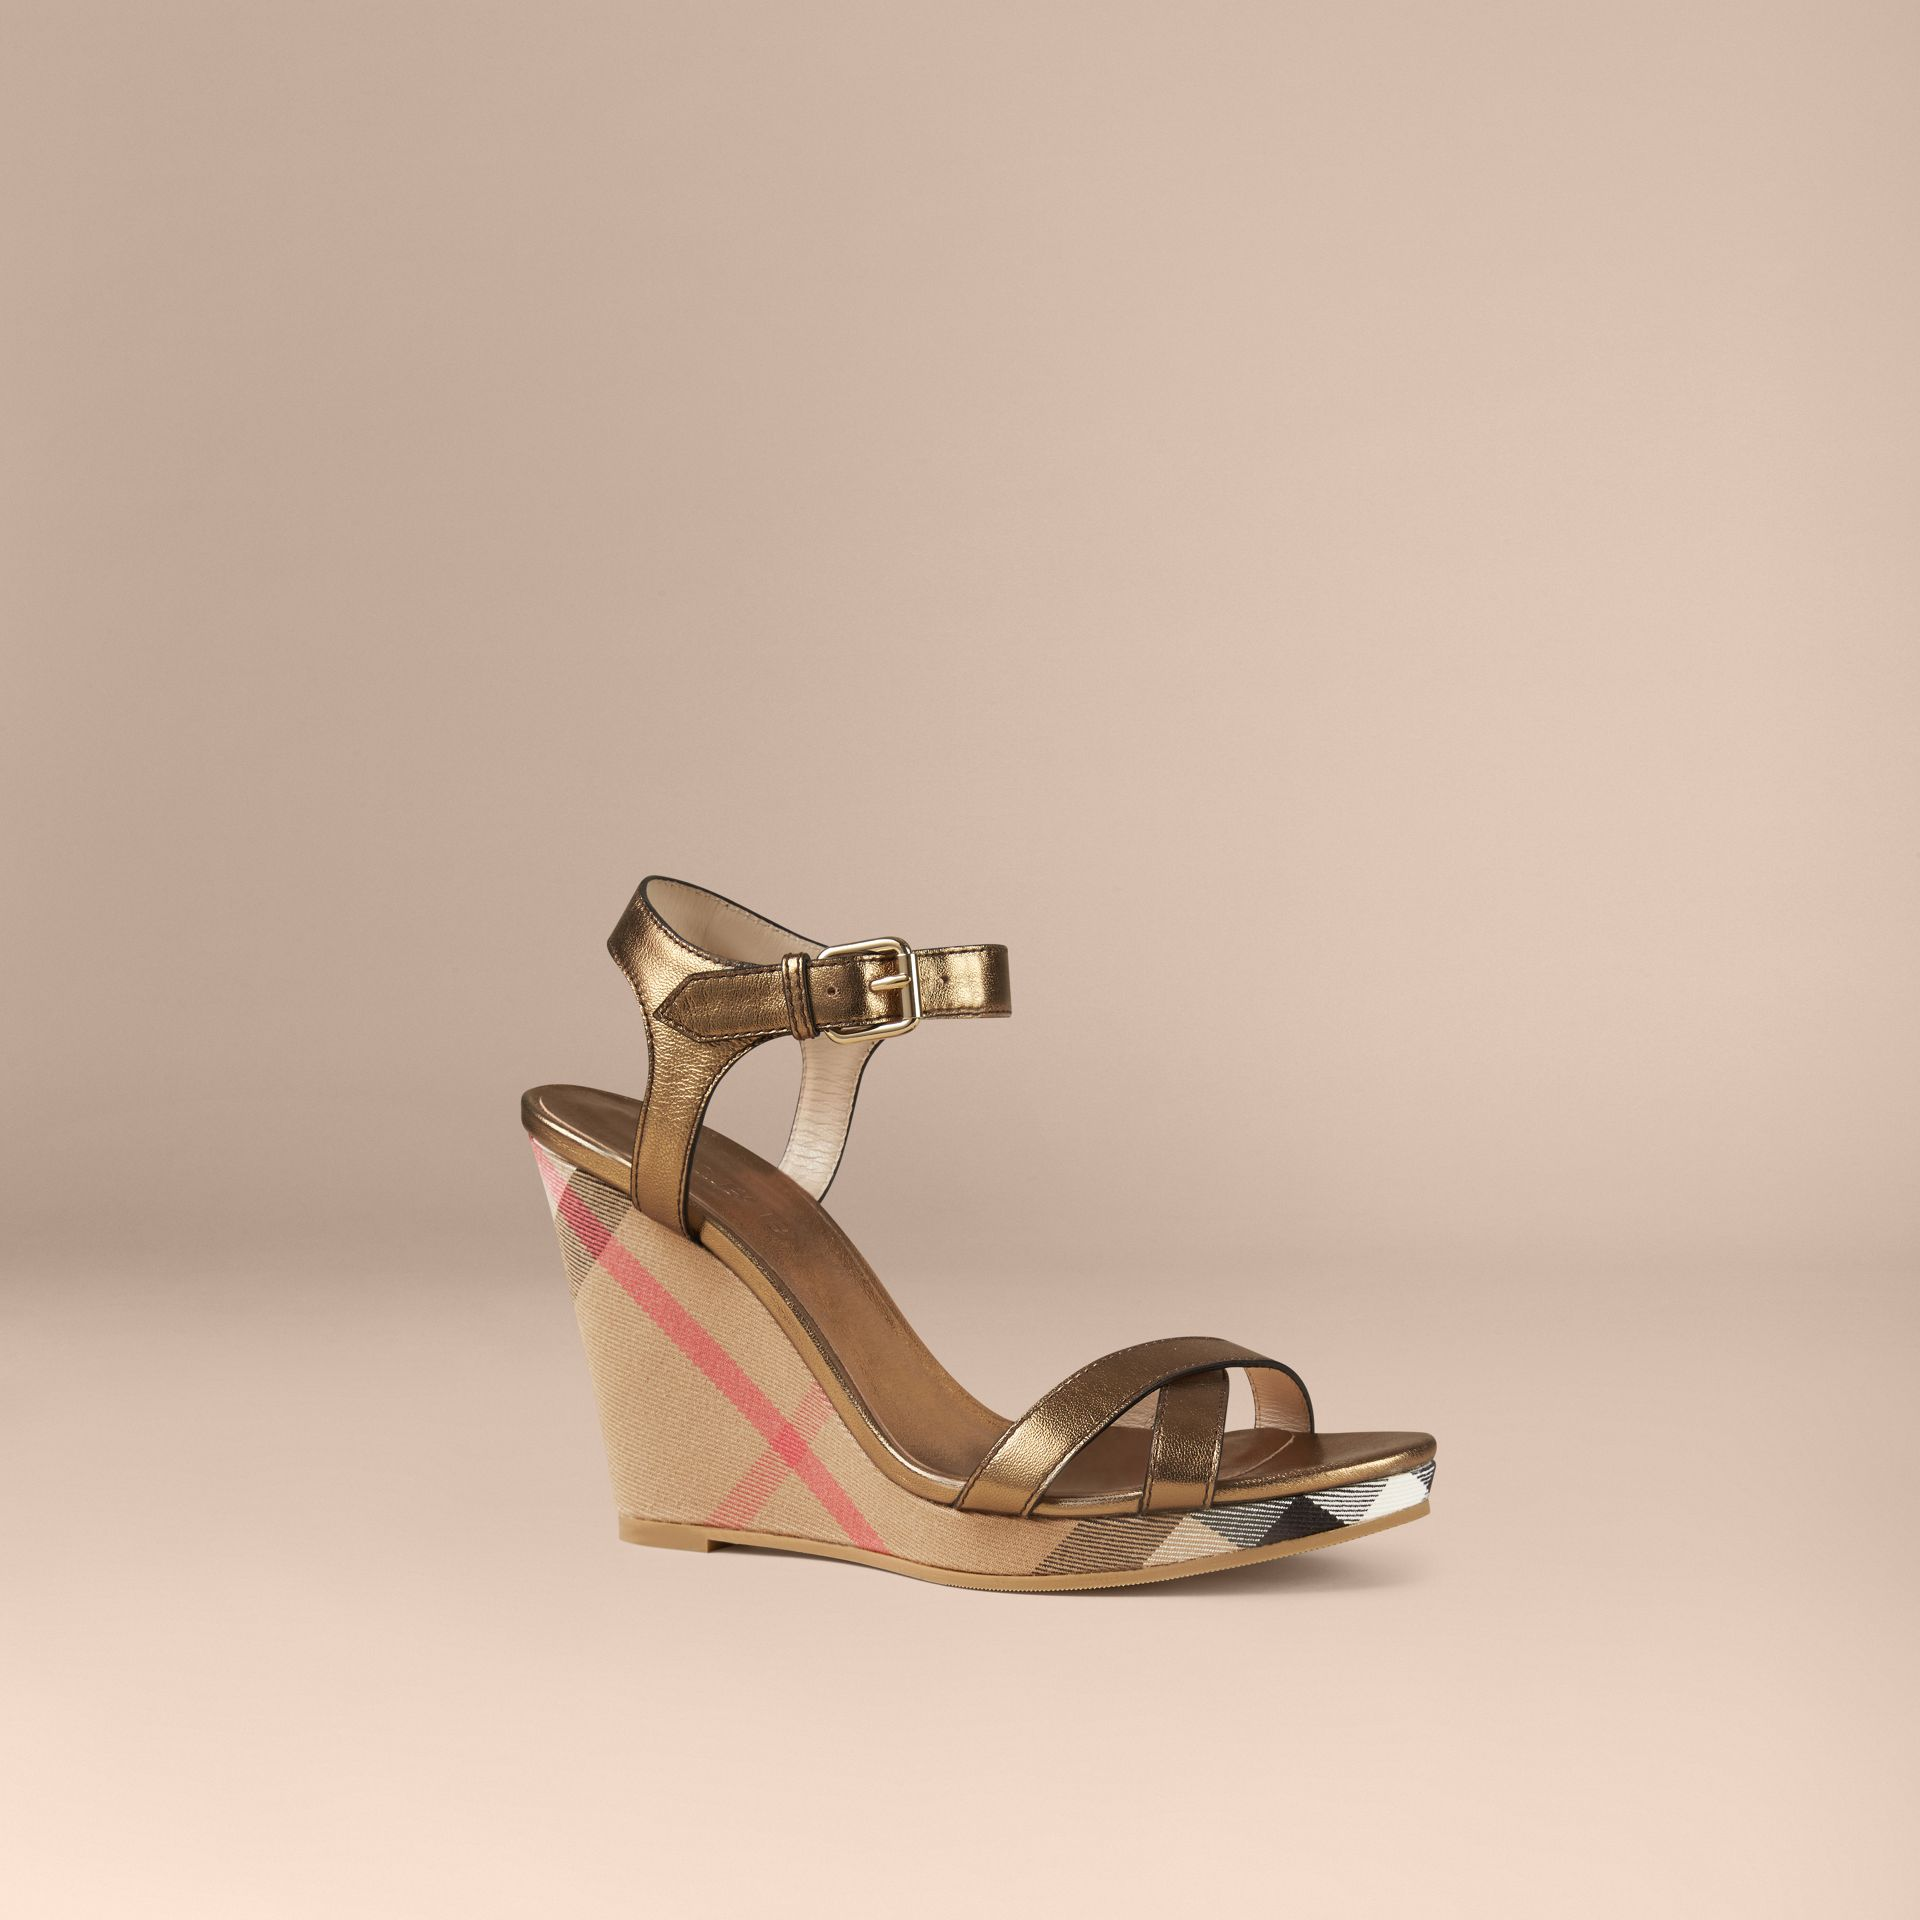 Heritage gold House Check and Metallic Leather Wedge Sandals - gallery image 1